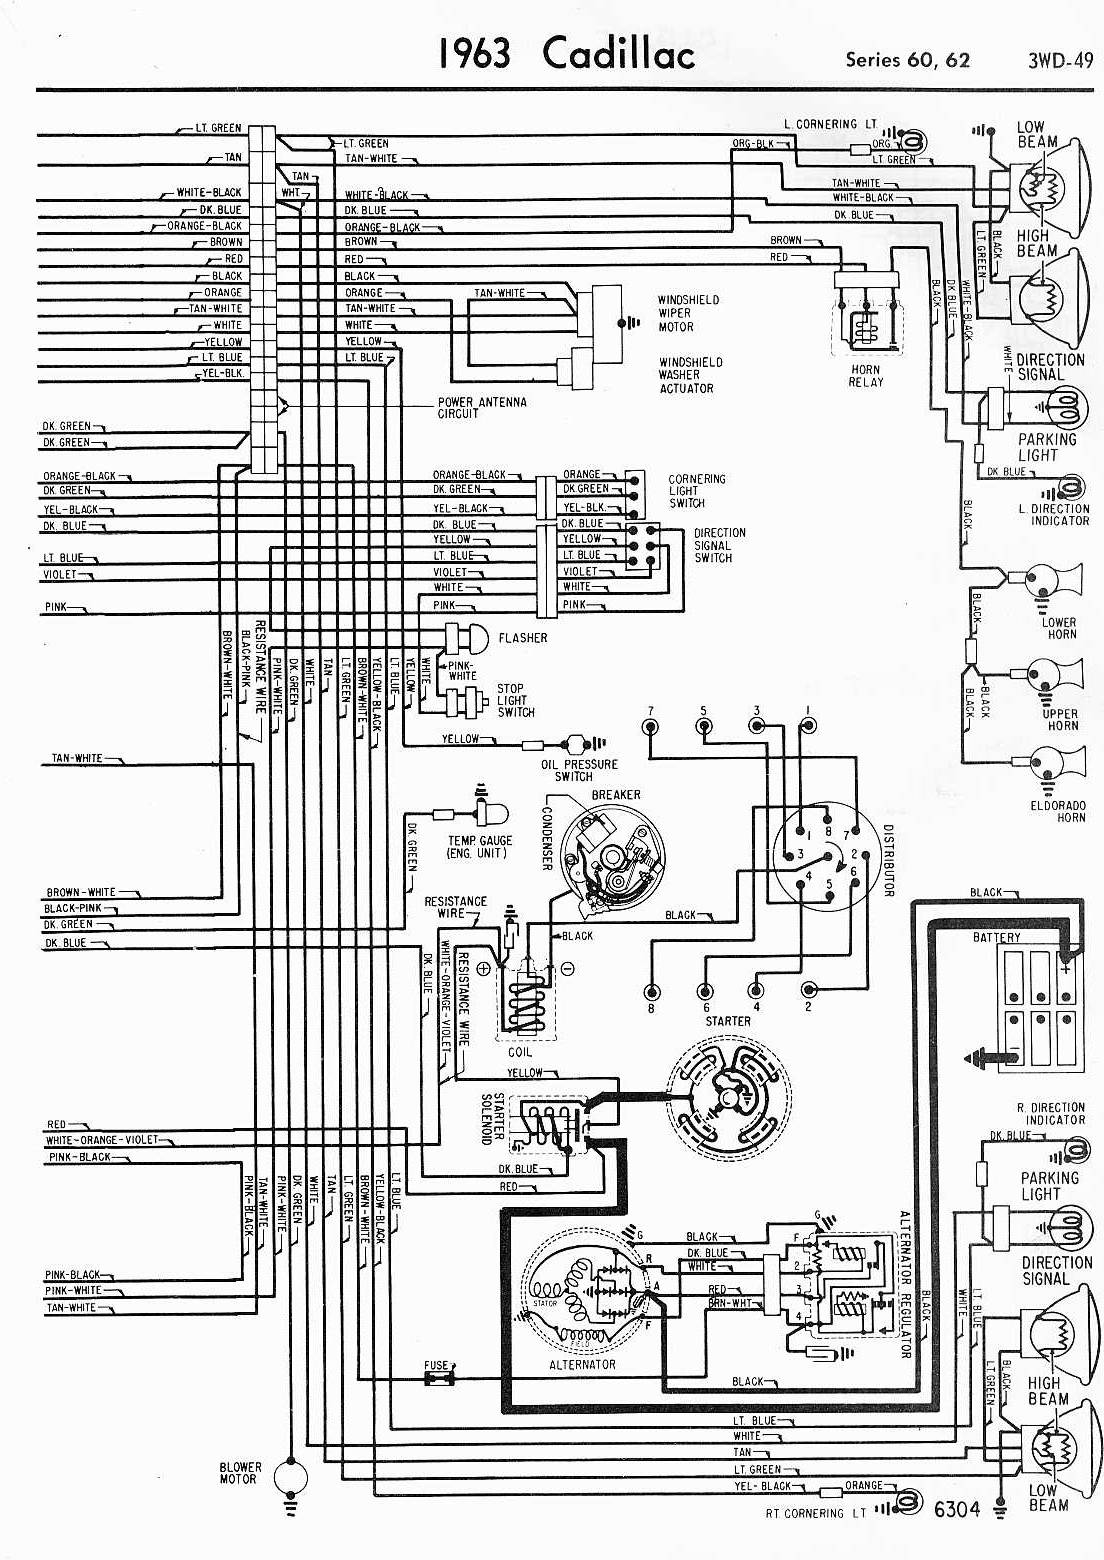 cadillac car manuals wiring diagrams pdf fault codes rh automotive manuals net 1962 cadillac deville wiring diagram Cadillac DeVille Wiring-Diagram